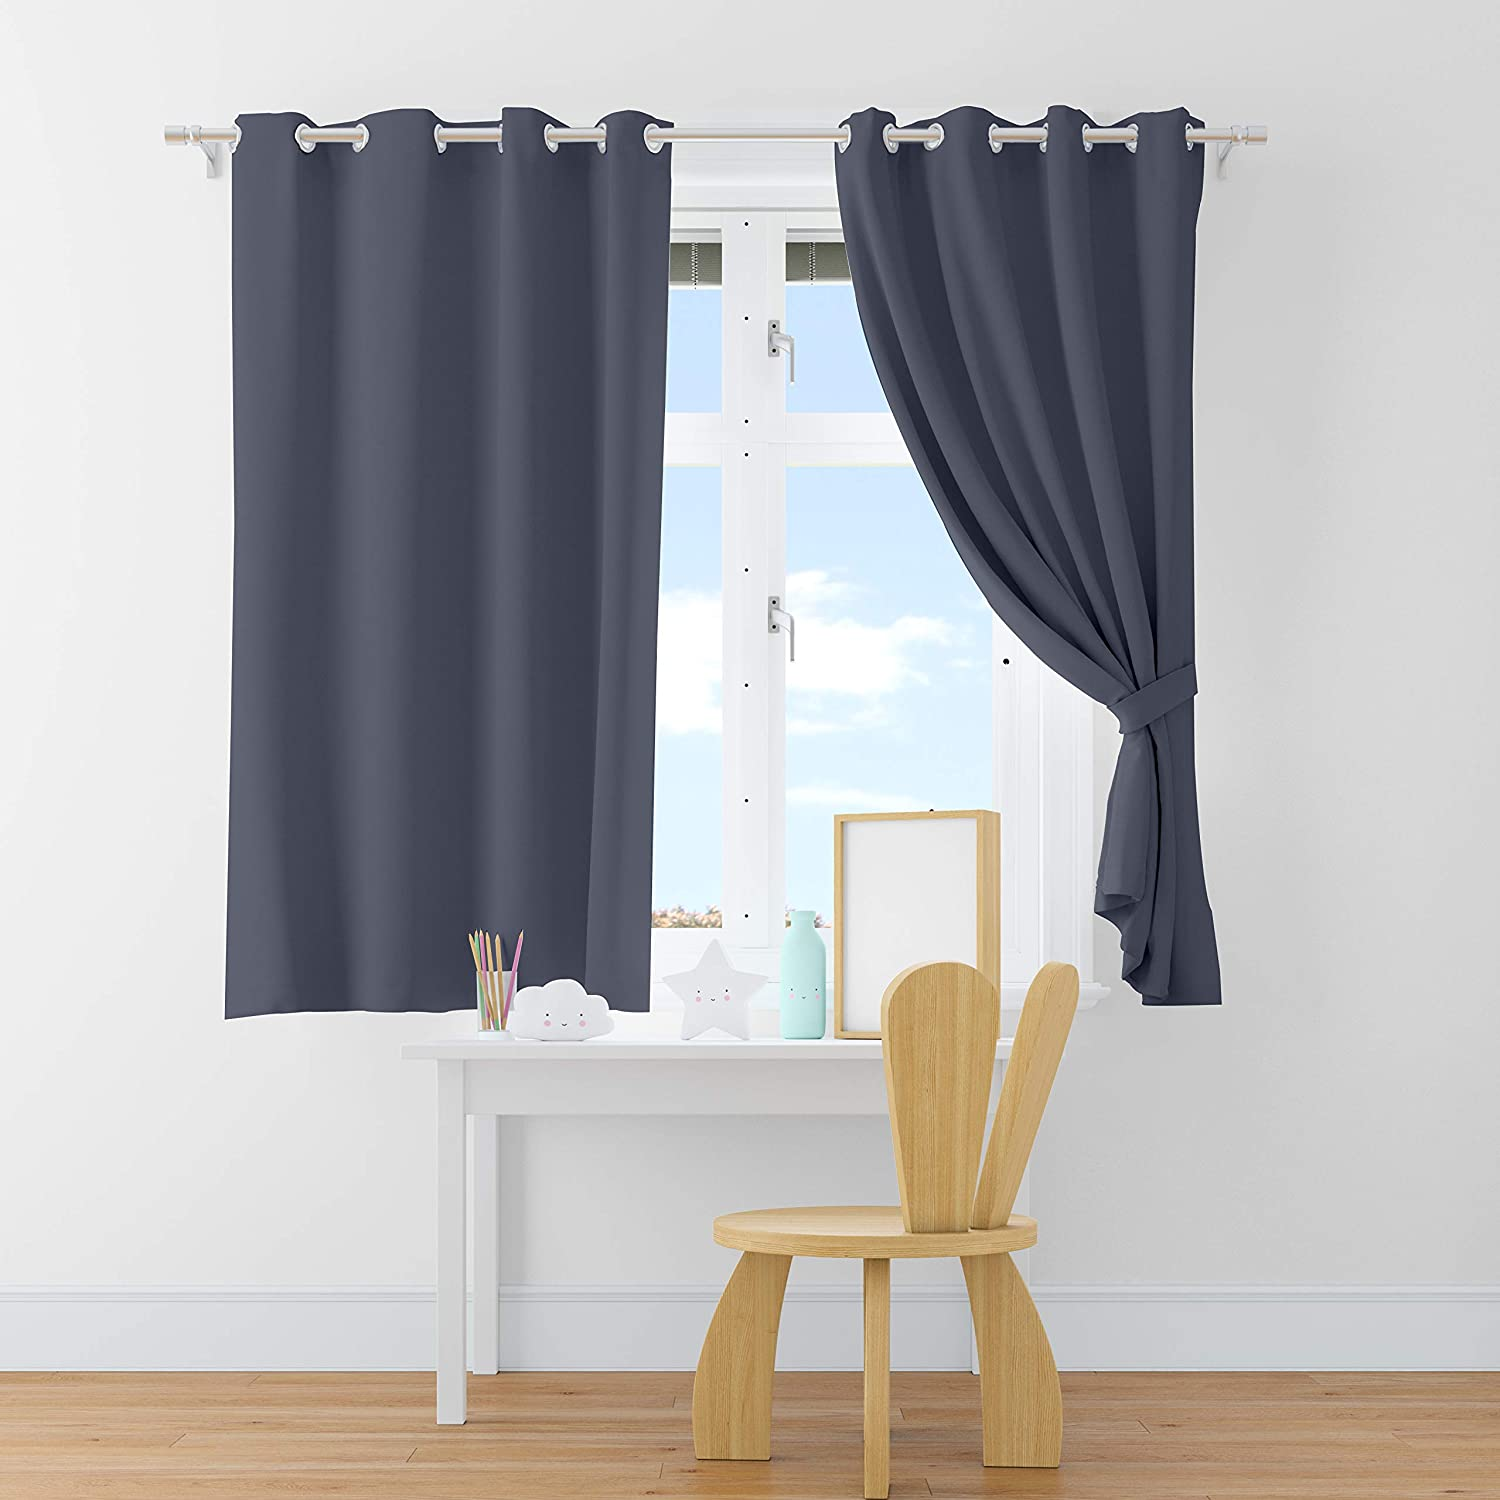 COZOLO Blackout Curtains Translated for -Thermal Bedroom Max 71% OFF Insulated